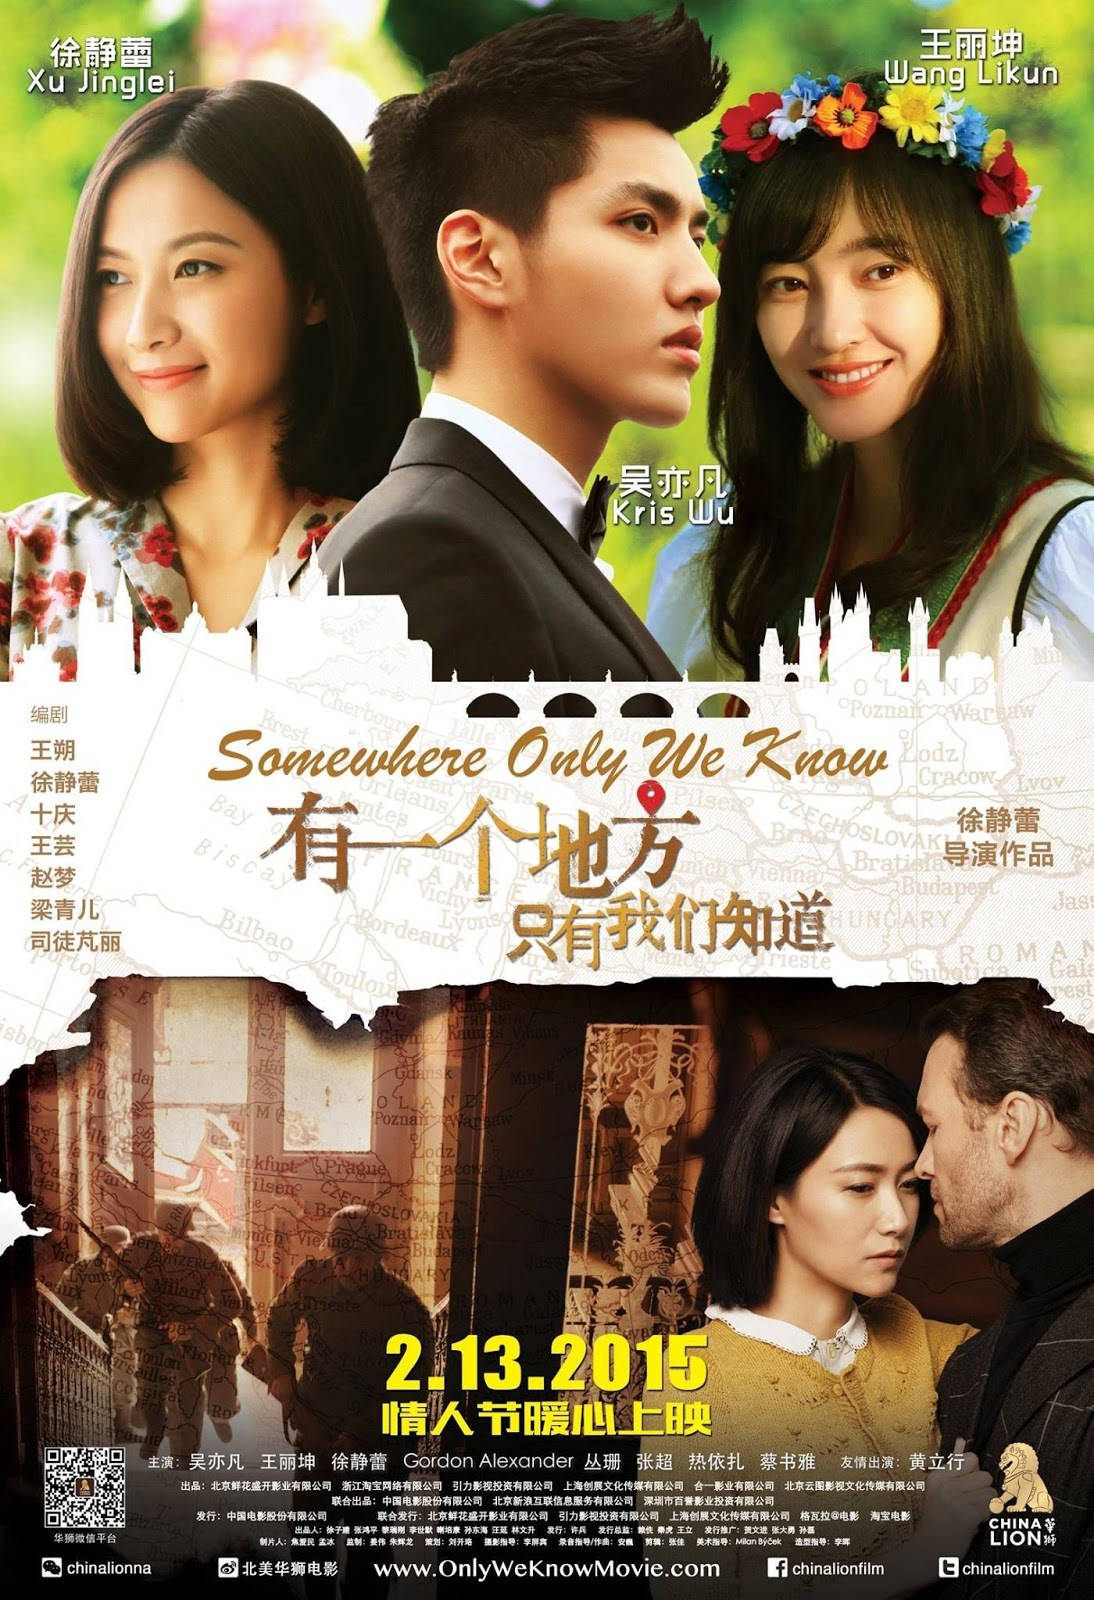 Somewhere Only We Know (2015) ชวนคุณบินไปด้วยกัน